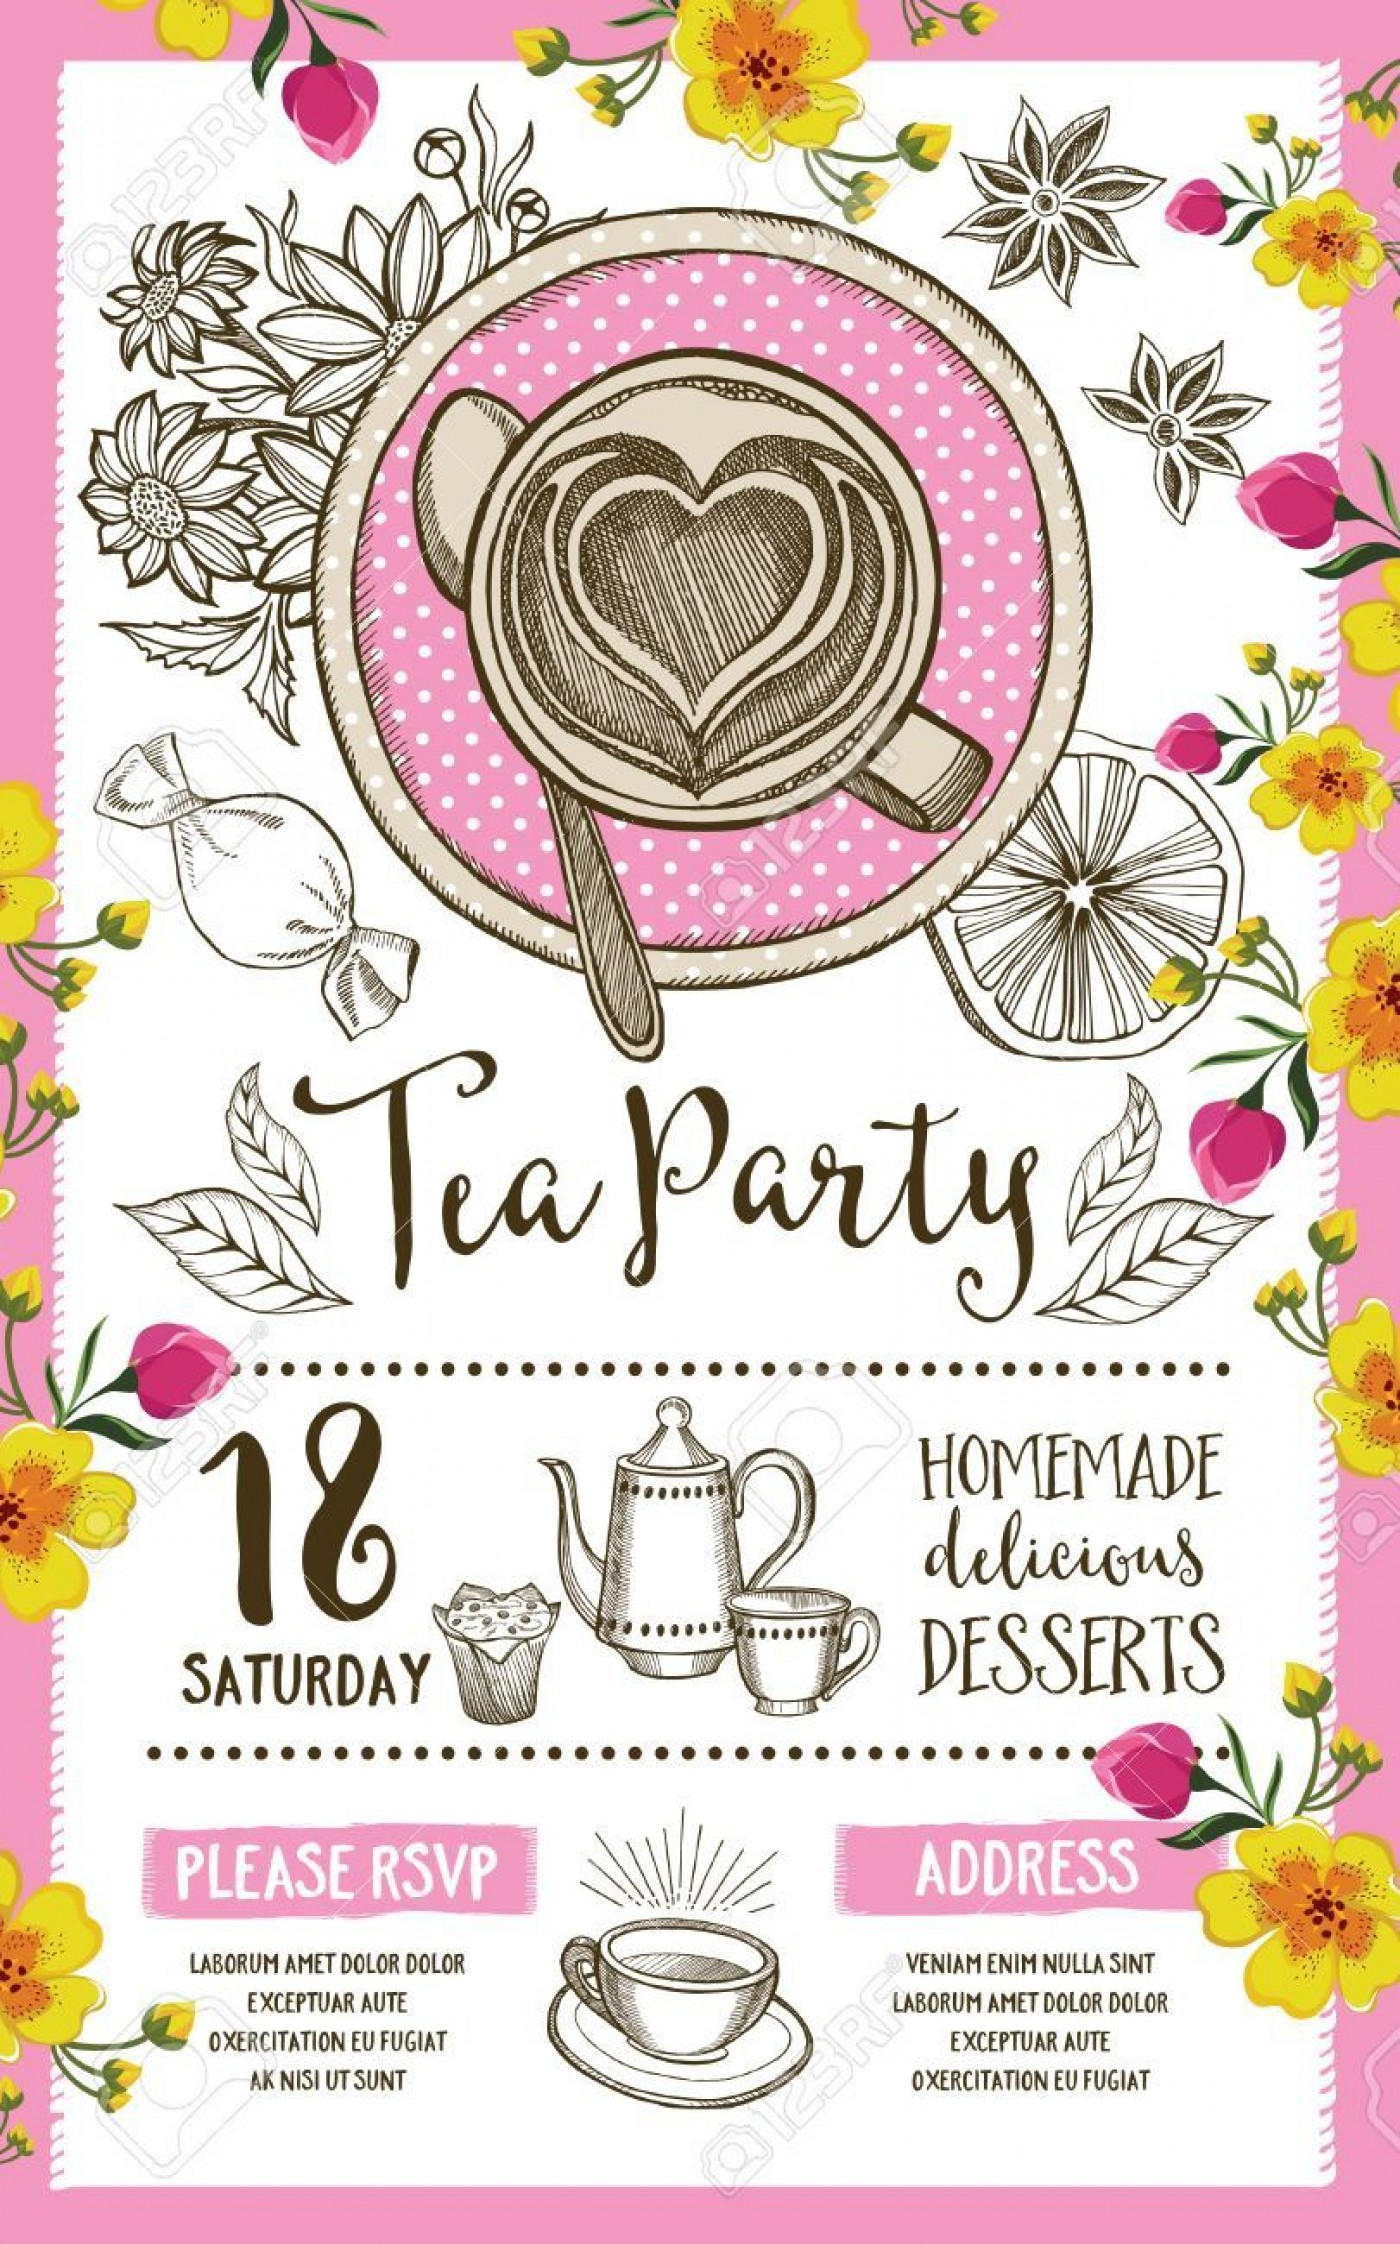 004 Wonderful Tea Party Invitation Template Inspiration  Vintage Free Editable Card Pdf1400